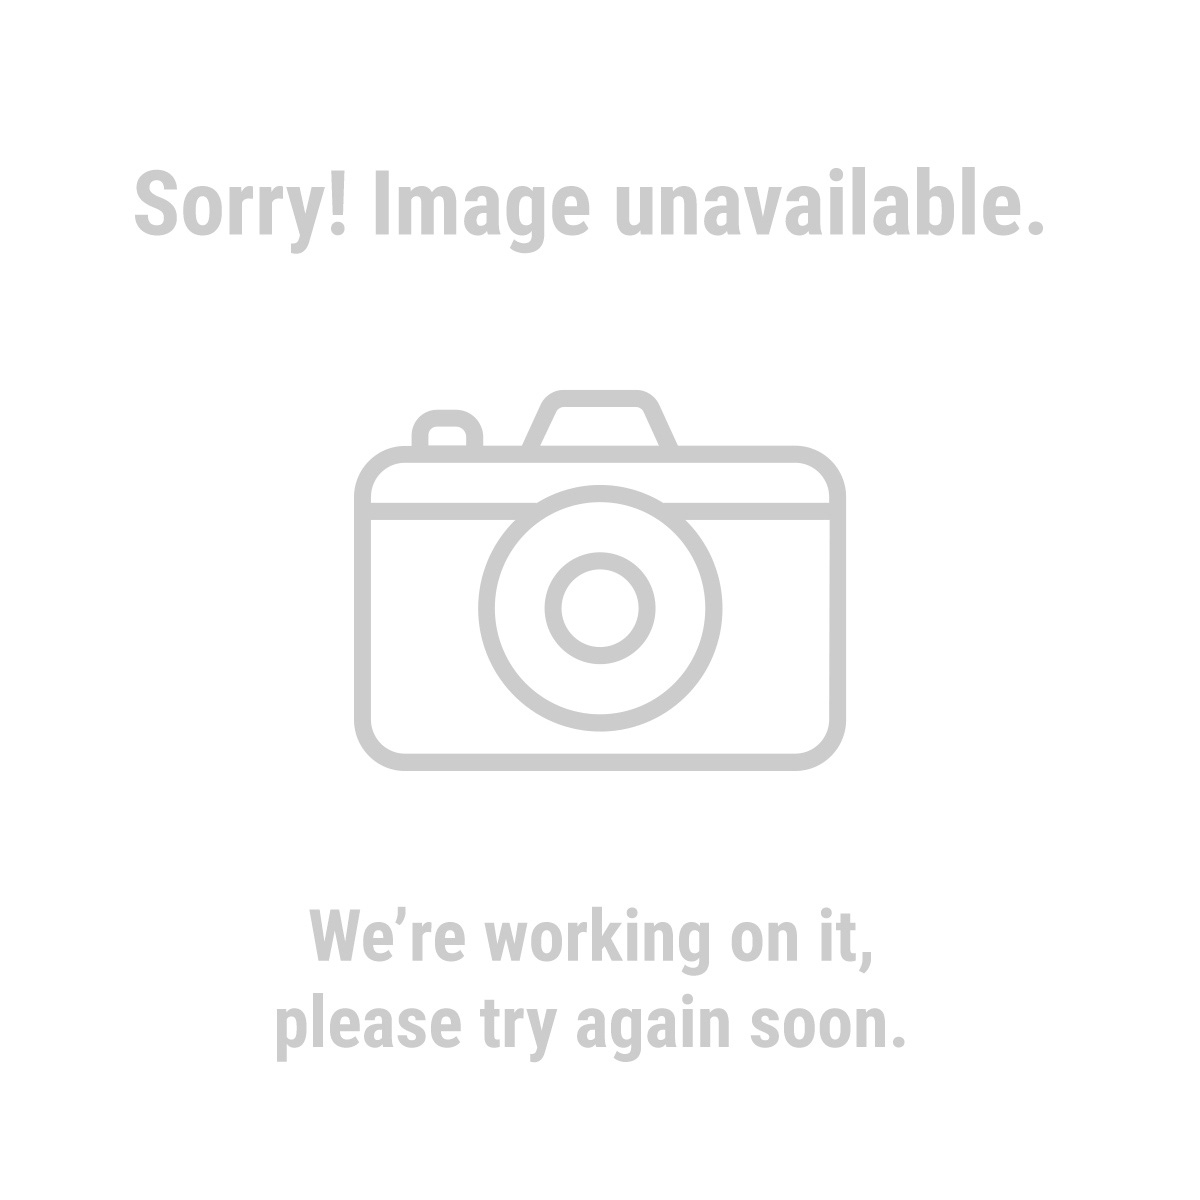 Pittsburgh 69680 4 Piece Tongue and Groove Joint Pliers Set